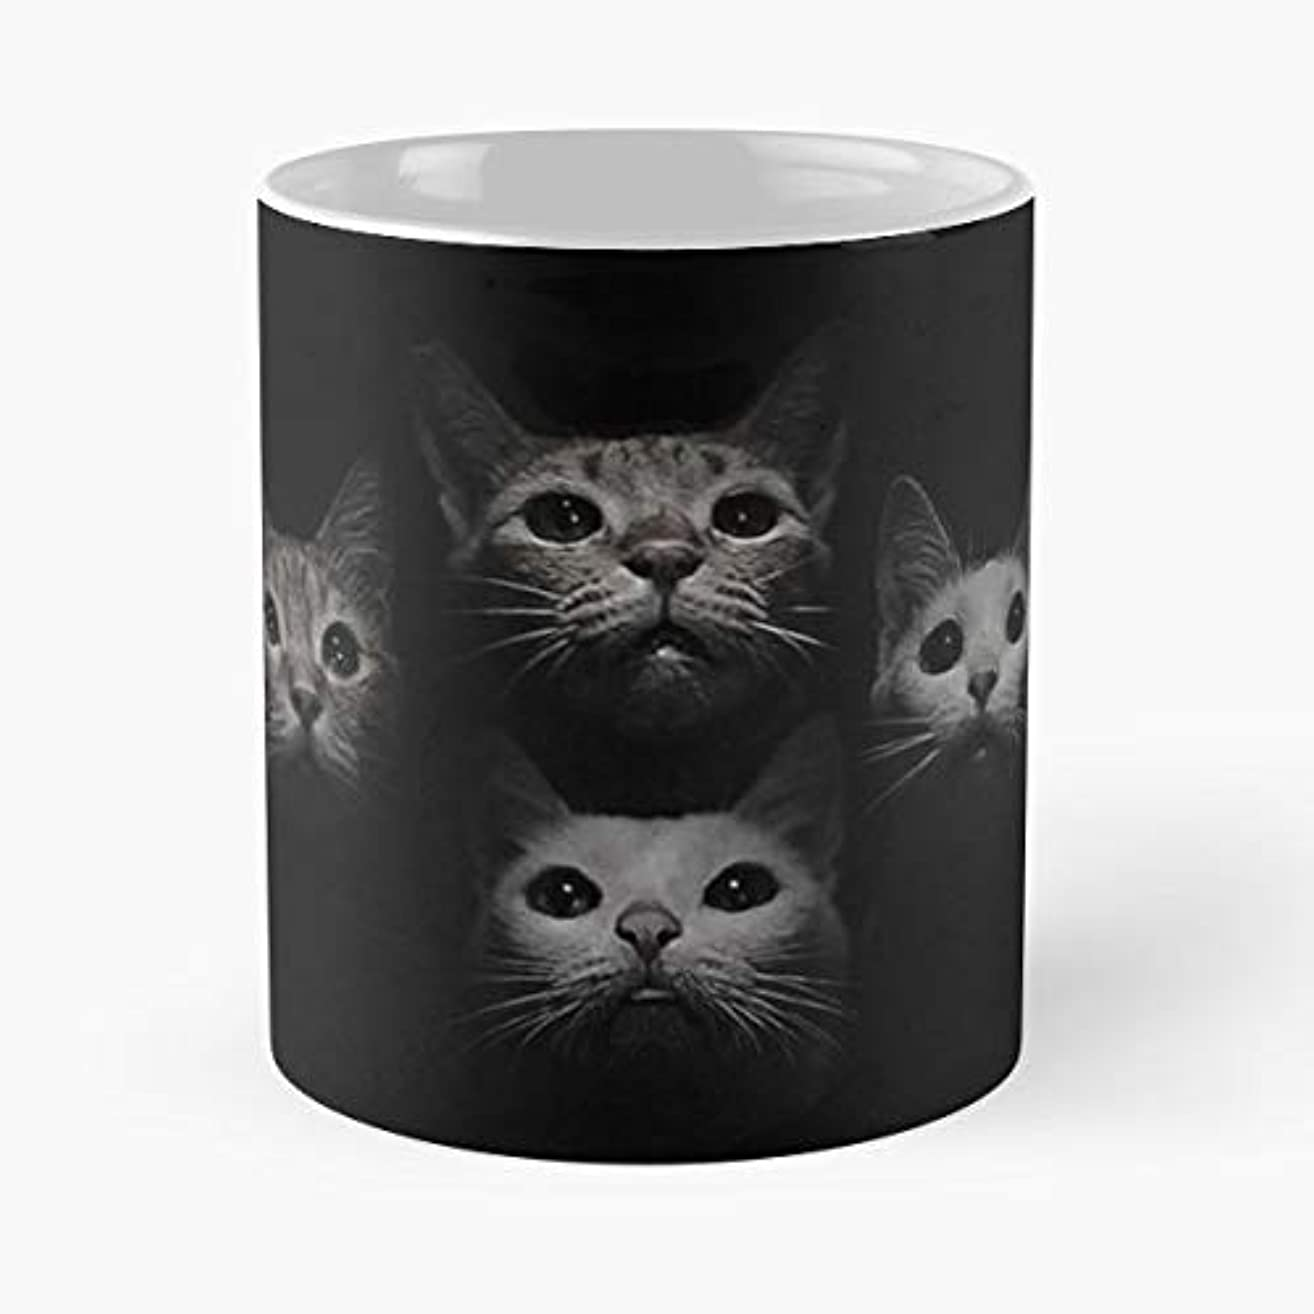 Animal Pet Cat Dog - 11 Oz Coffee Mugs Ceramic The Best Gift For Holidays, Item Use Daily